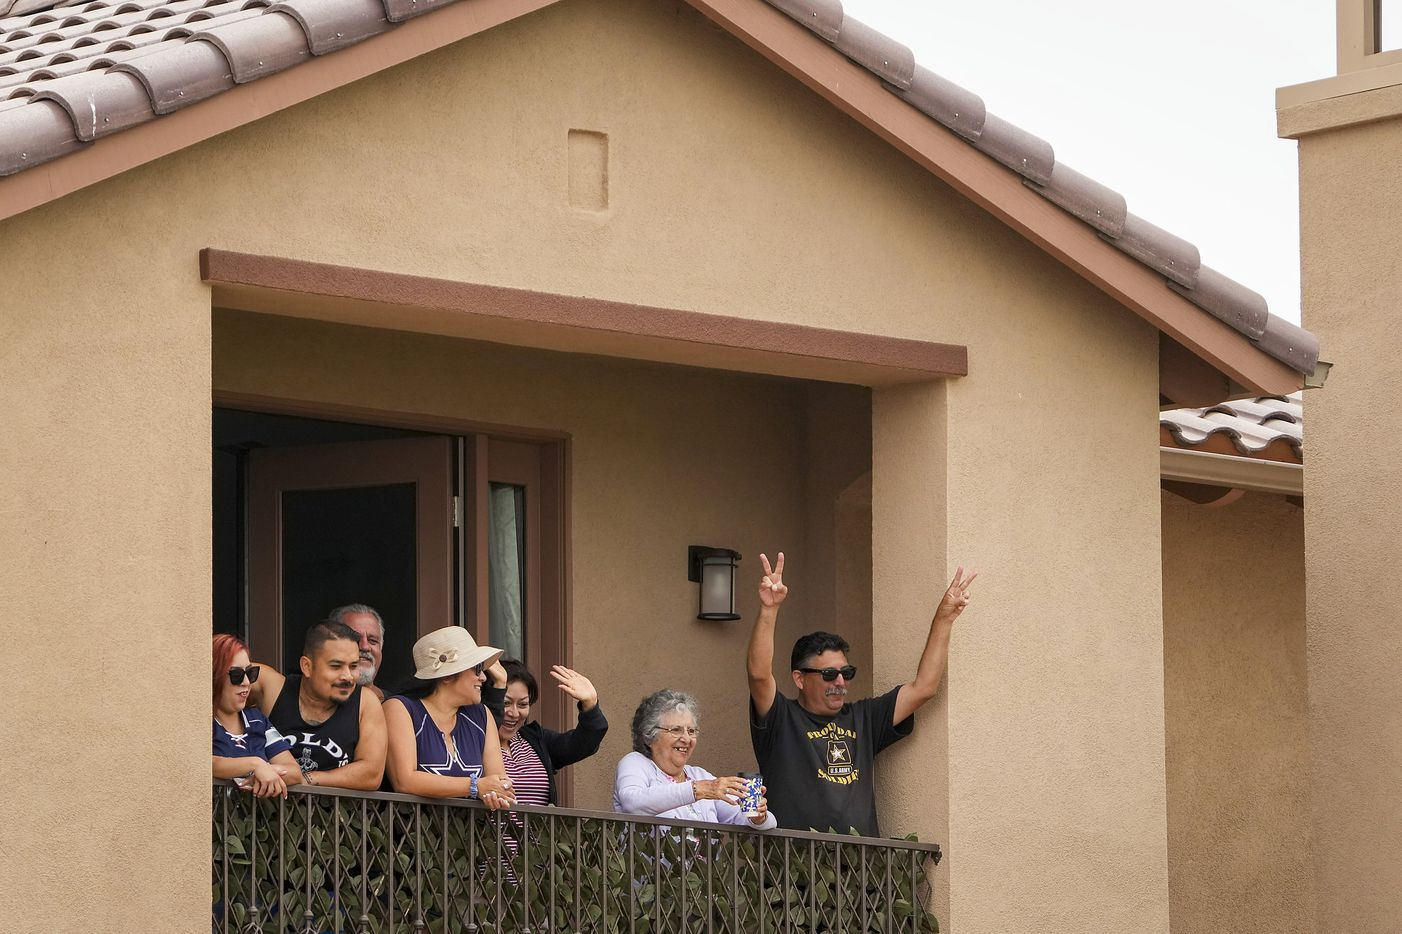 People cheer as they watch the Dallas Cowboys practice at training camp from the balcony of a house adjacent to the team's complex on Sunday, July 25, 2021, in Oxnard, Calif.